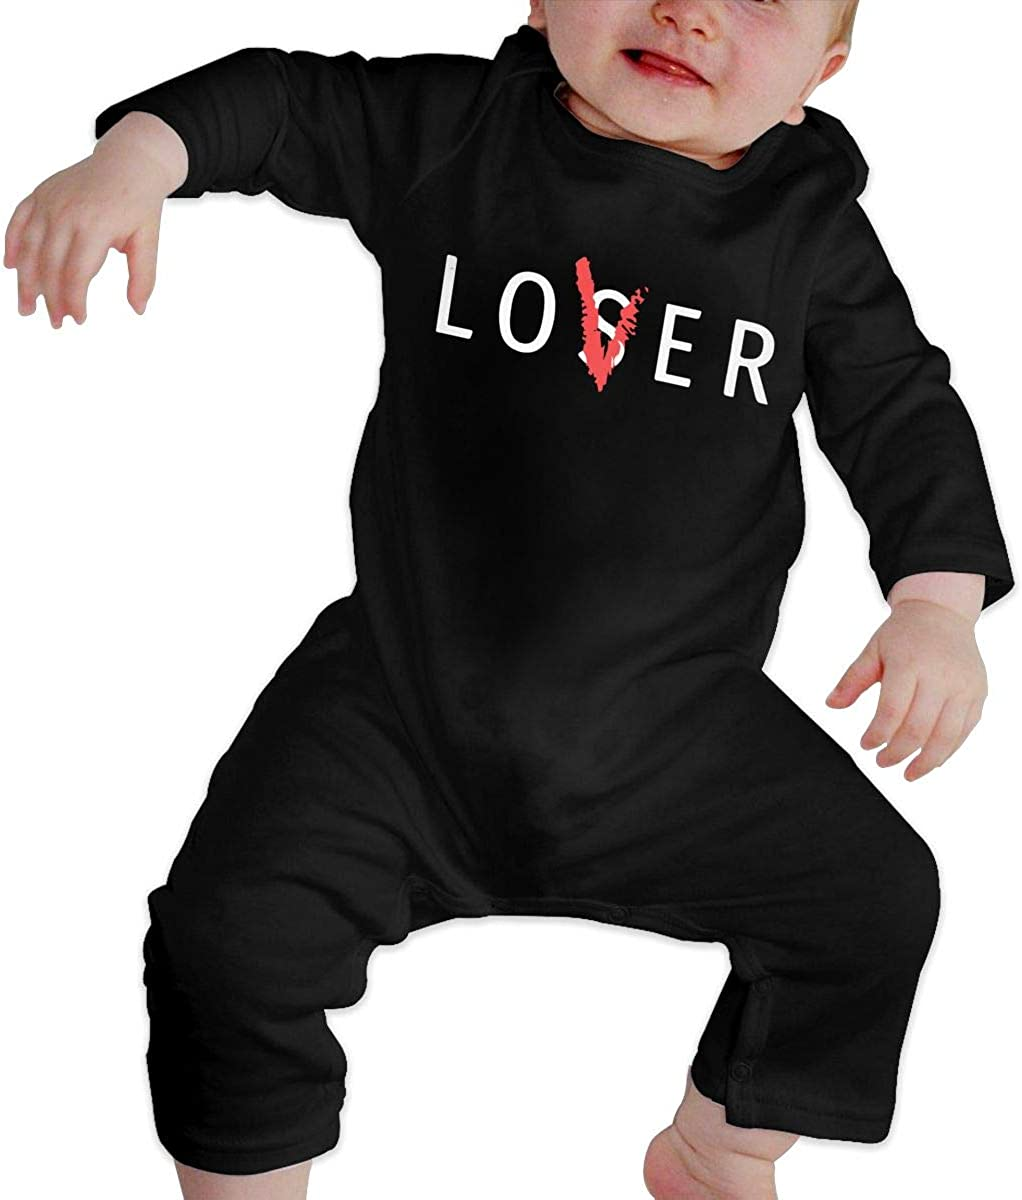 Loser Lover Organic One-Piece Kid Pajamas Clothes BKNGDG8Q Newborn Baby Boy Girl Romper Jumpsuit